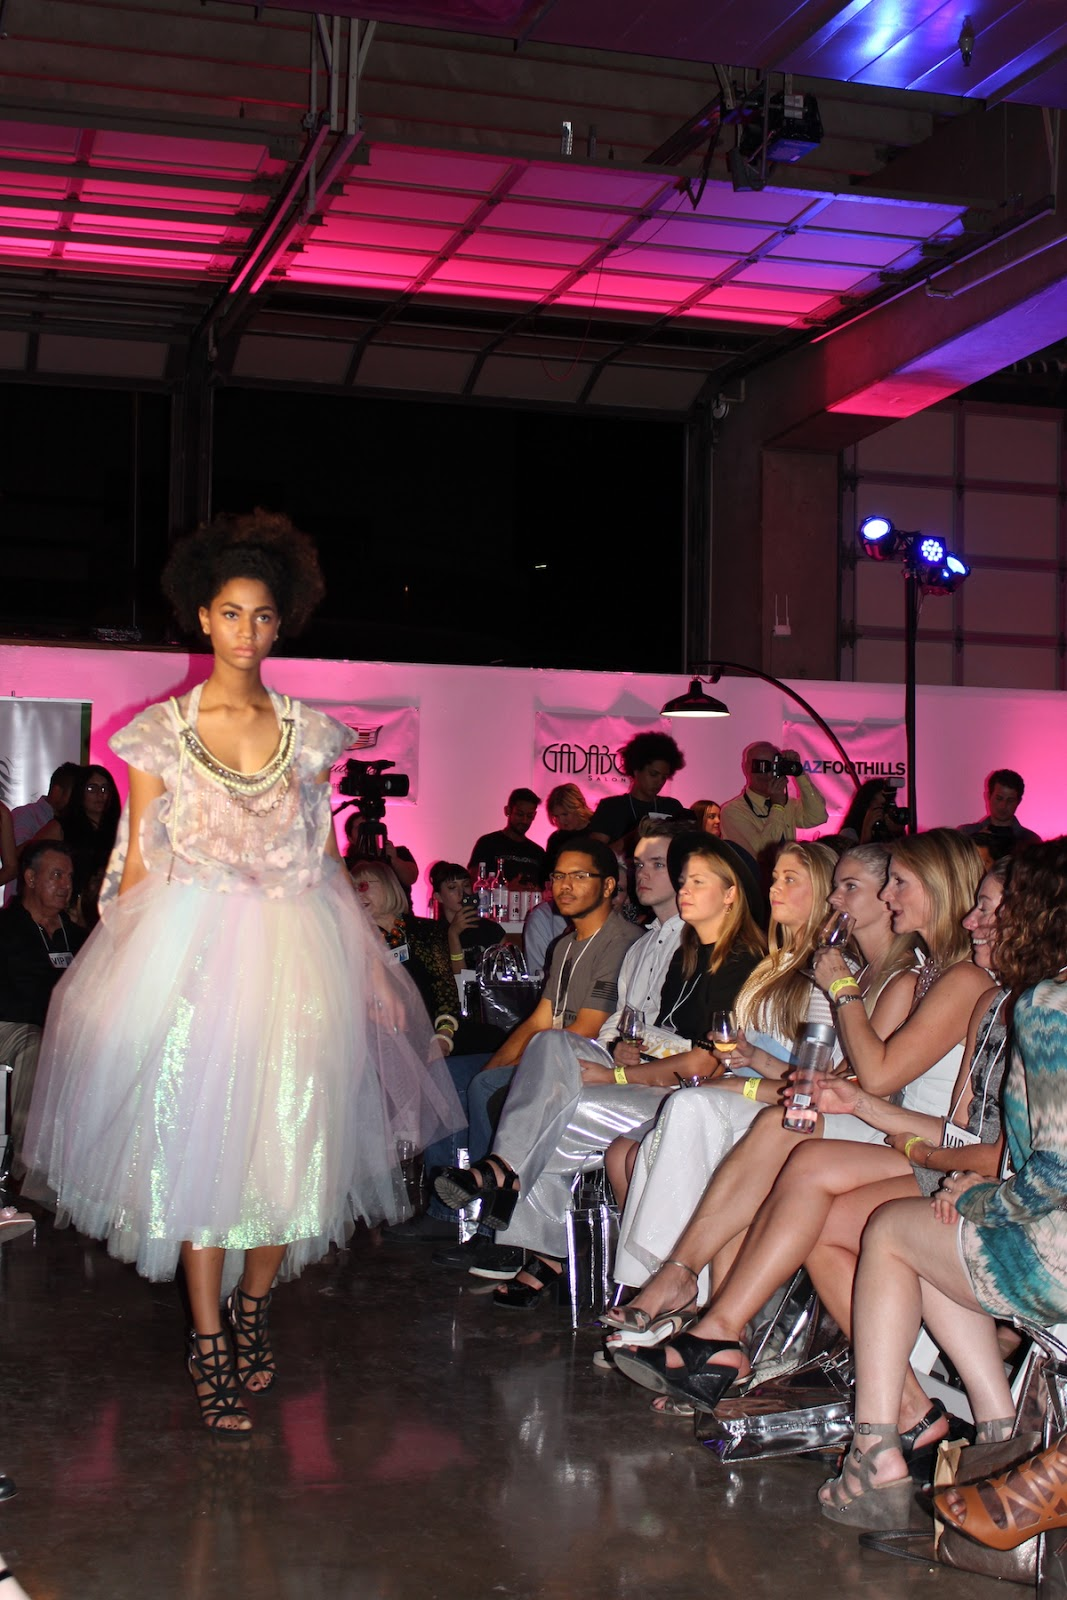 This model is strutting down the runway in a poofy white dress.